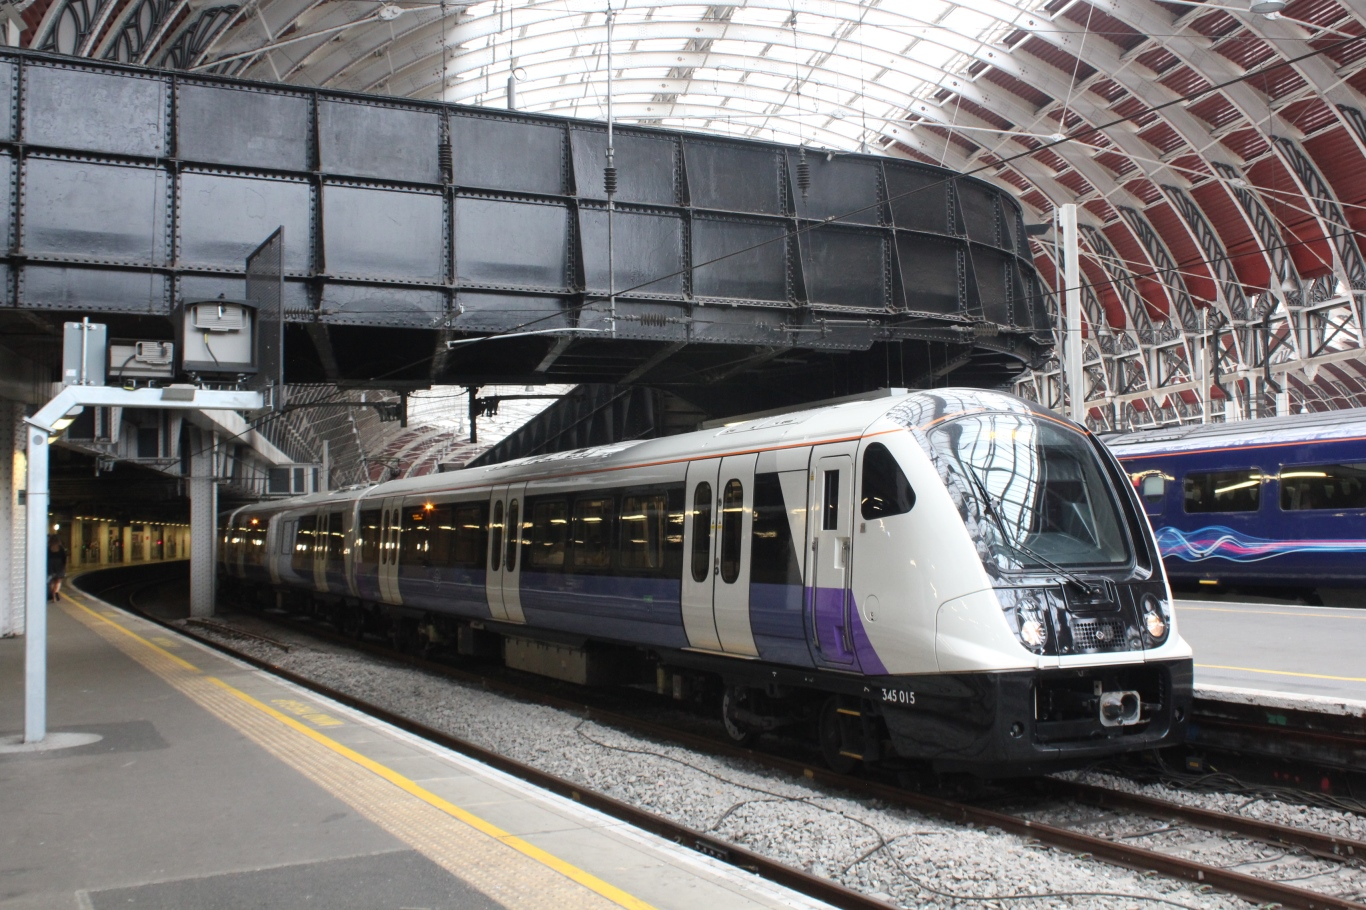 A Crossrail Class 345 train at Paddington